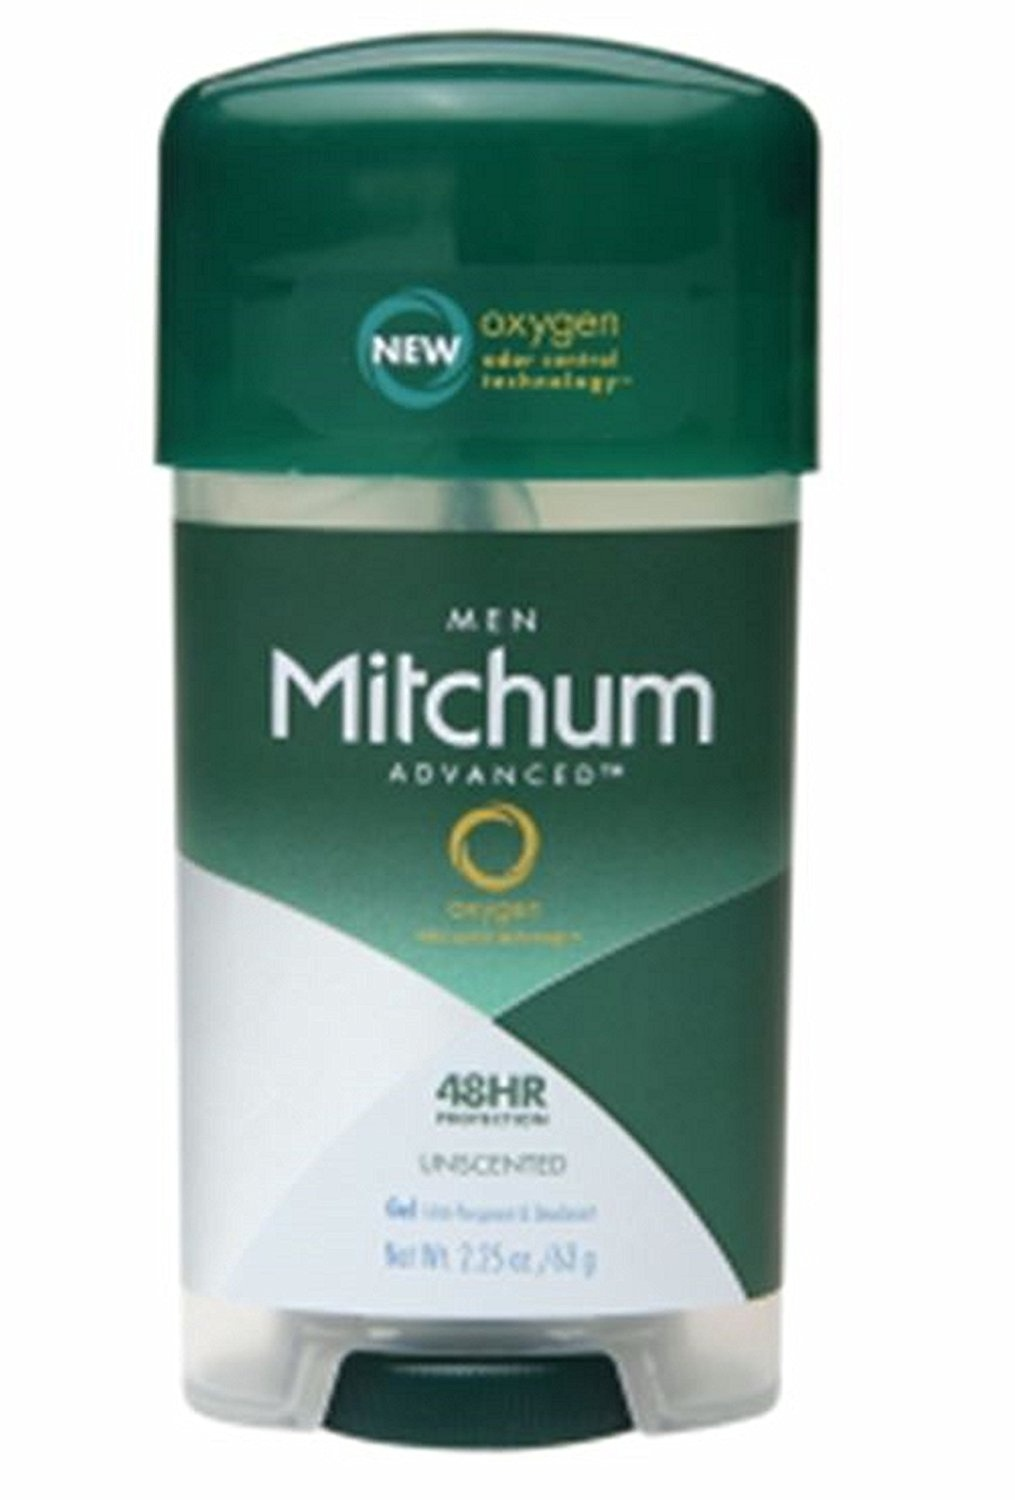 Mitchum Deodorant Only $0.99 @ Cvs! | Coupon Karma - Free Printable Coupons For Mitchum Deodorant